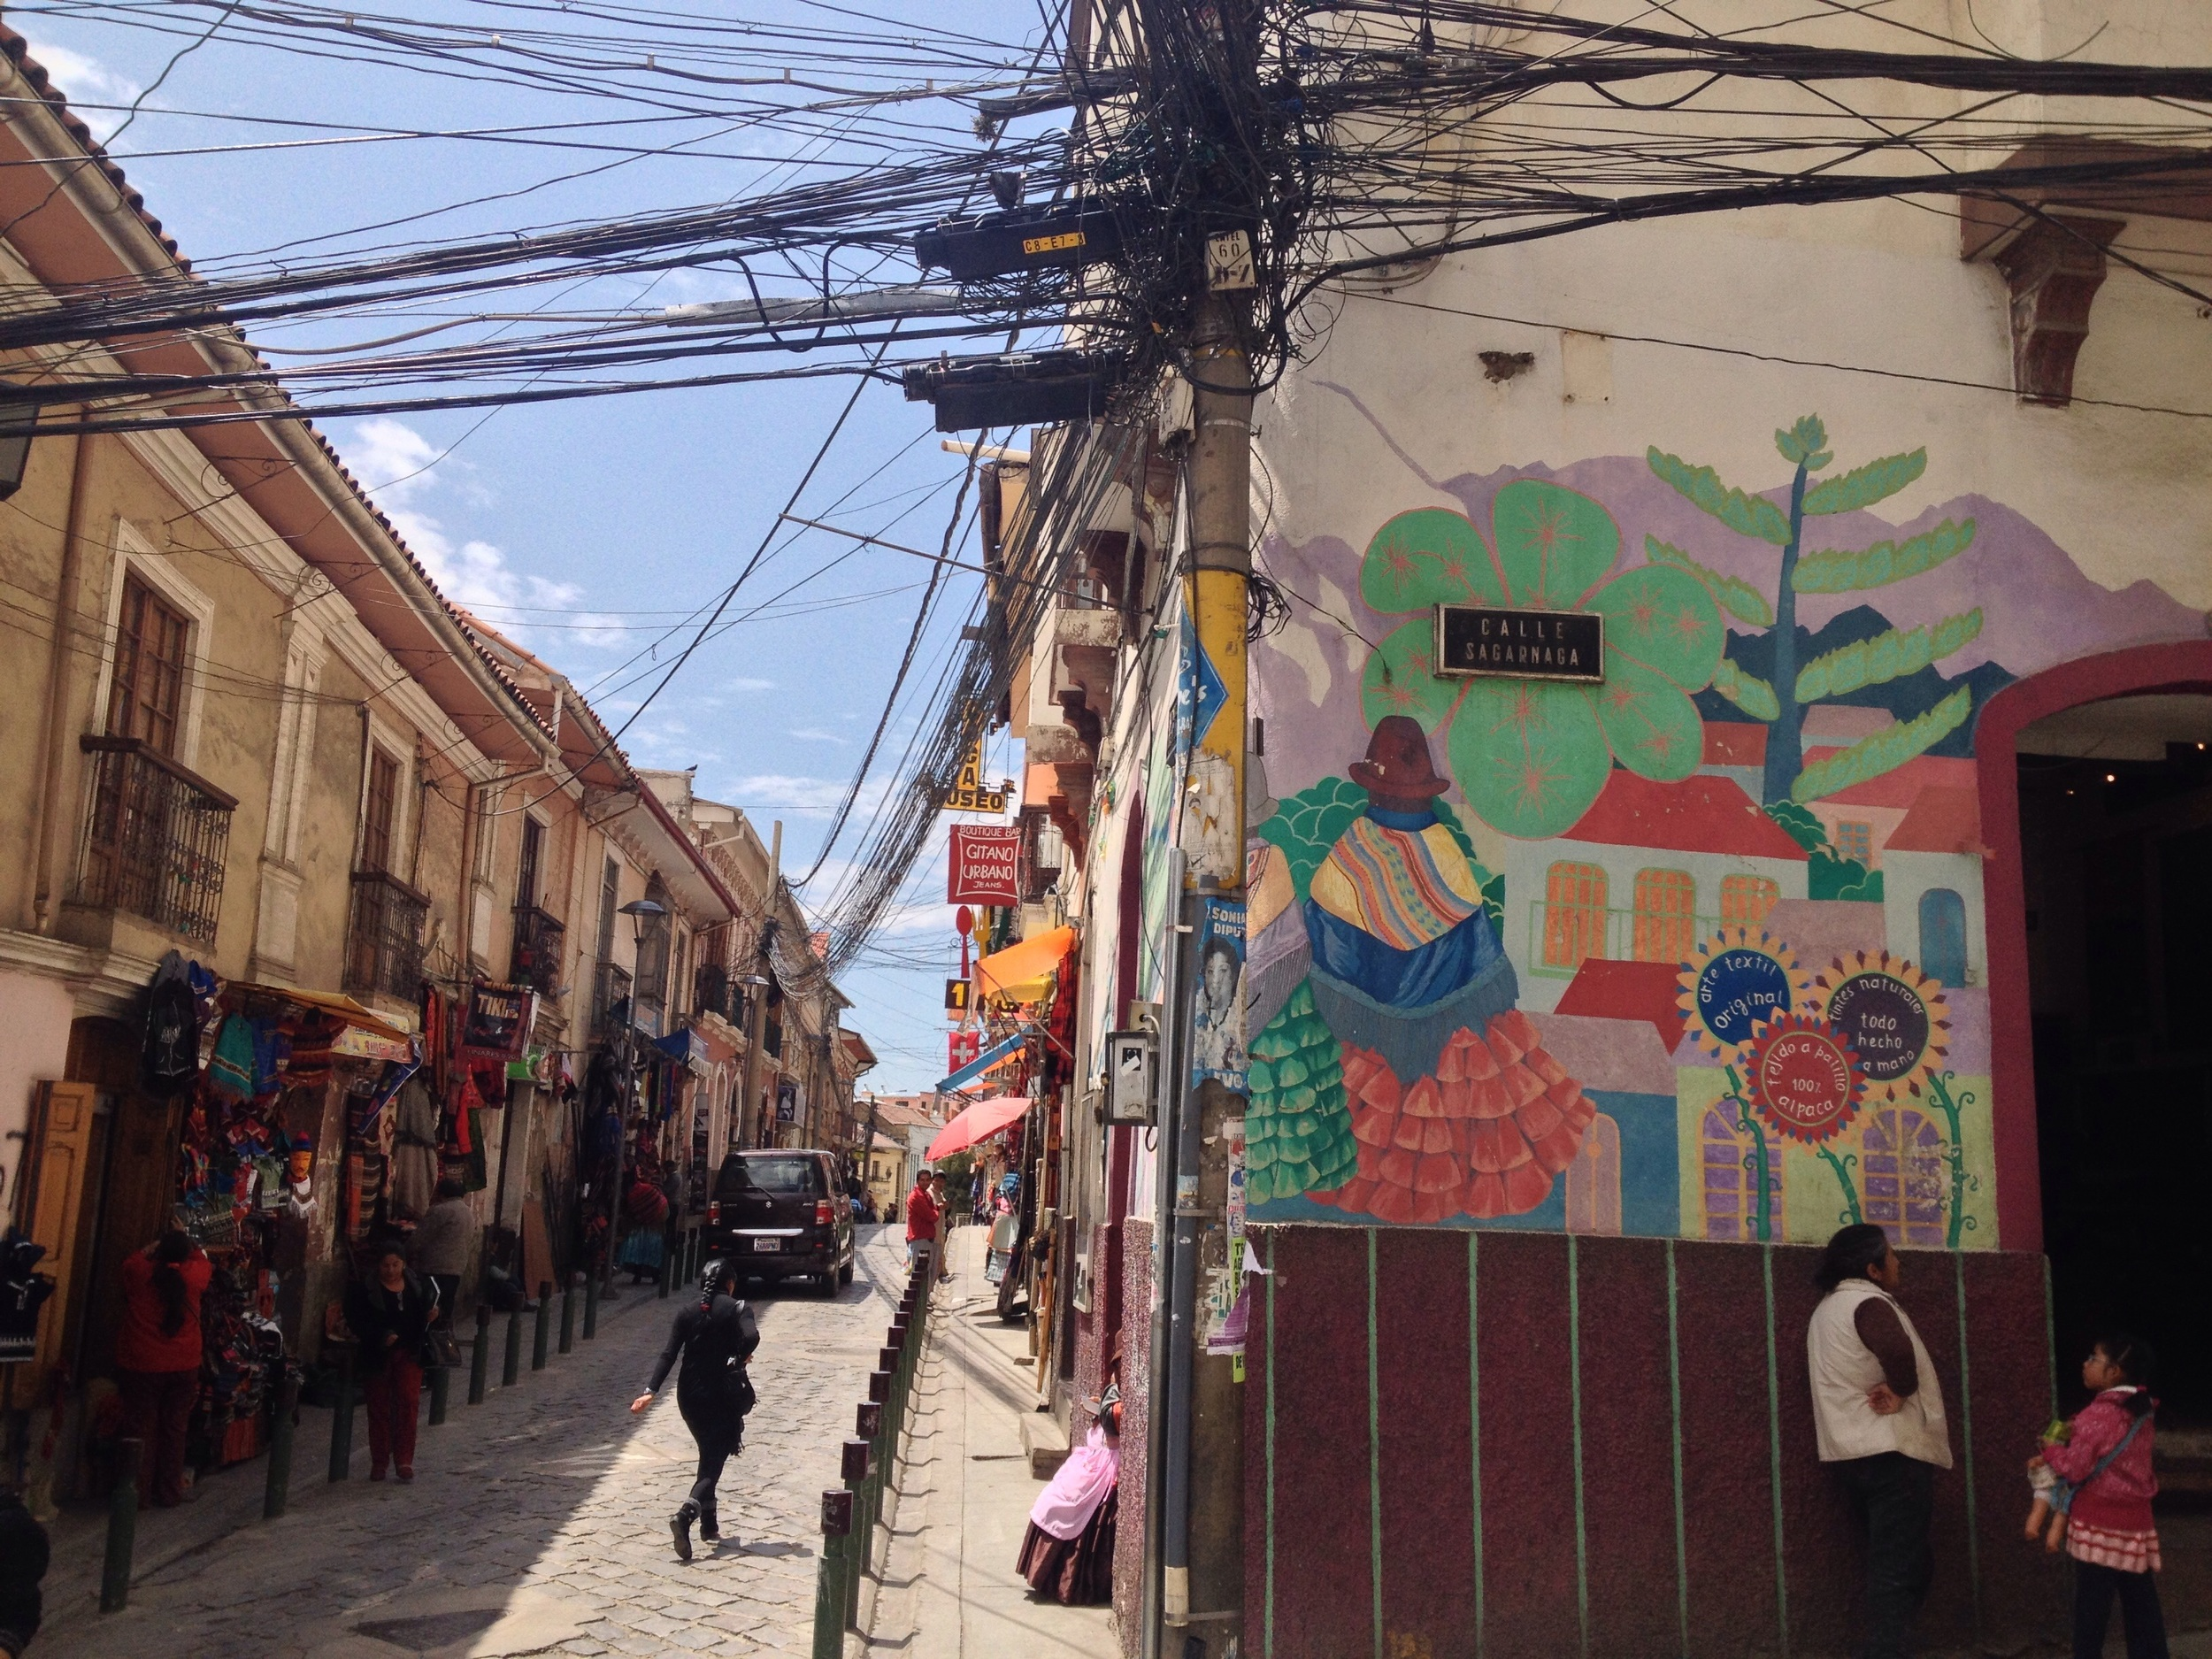 Near the Witches Markets. I wondered if La Pz's electricity distribution originated from this one pole.